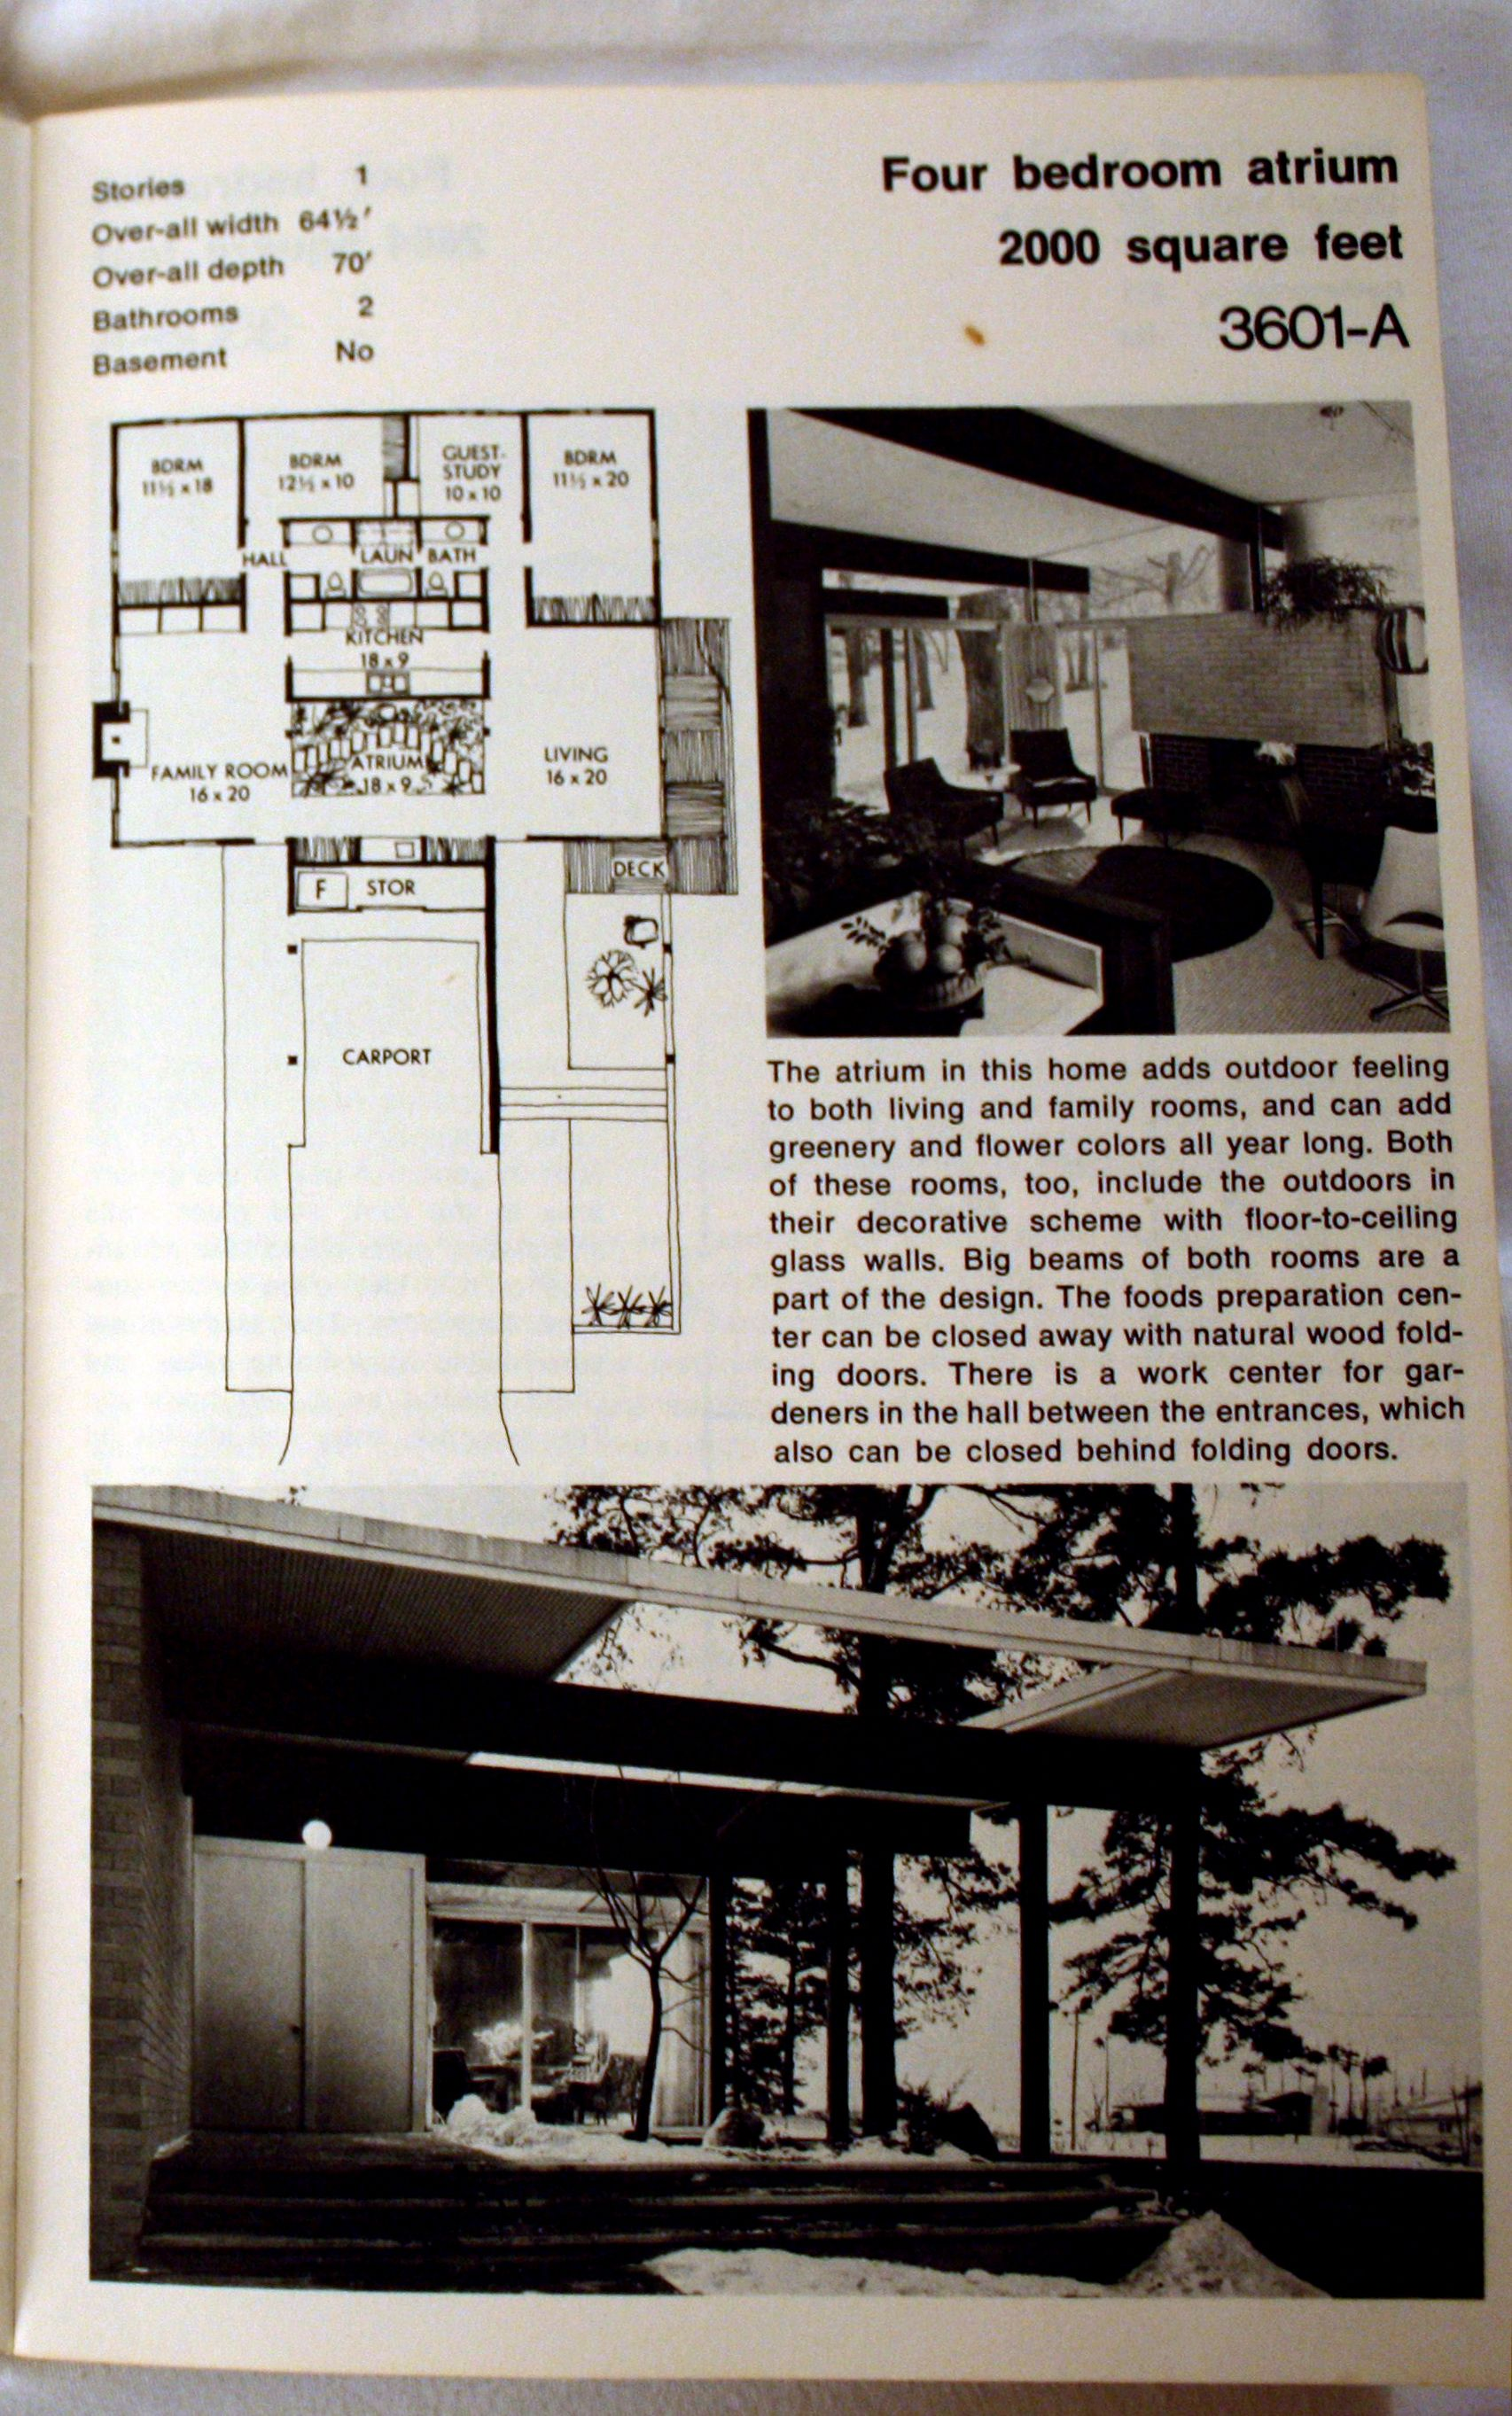 """Late 1960s Better Homes and Gardens Home Plans Book: """"HOME PLANS"""" - A Traditional or a Contemporary home for YOUR family"""""""